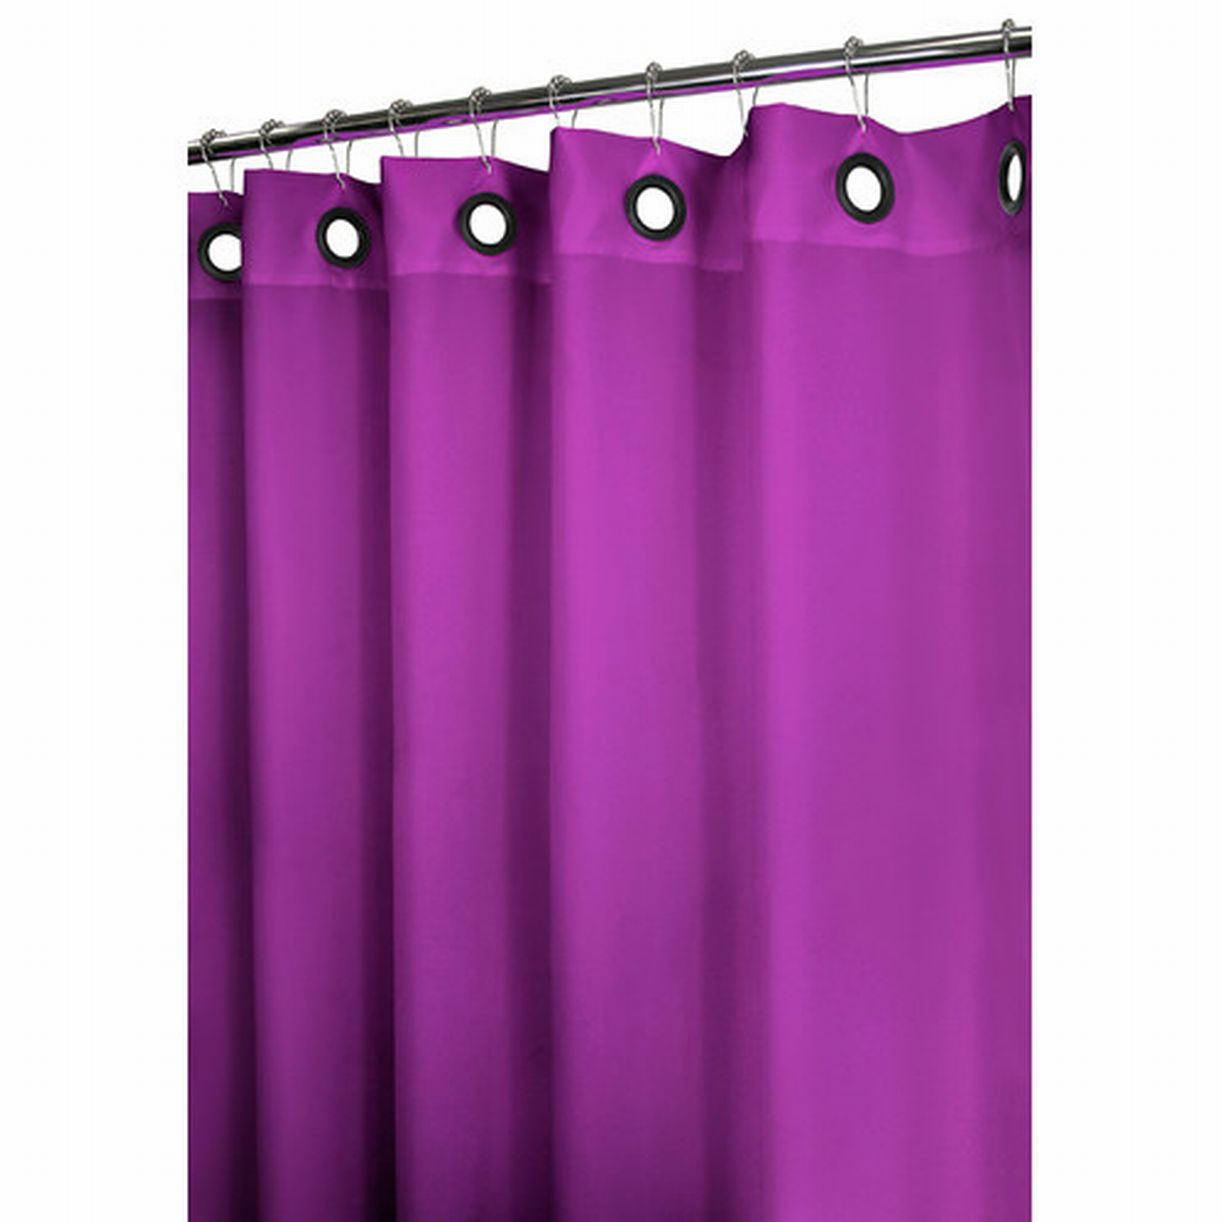 Watershed Solid Purple Fabric Shower Curtain With Large Grommet Option Bath